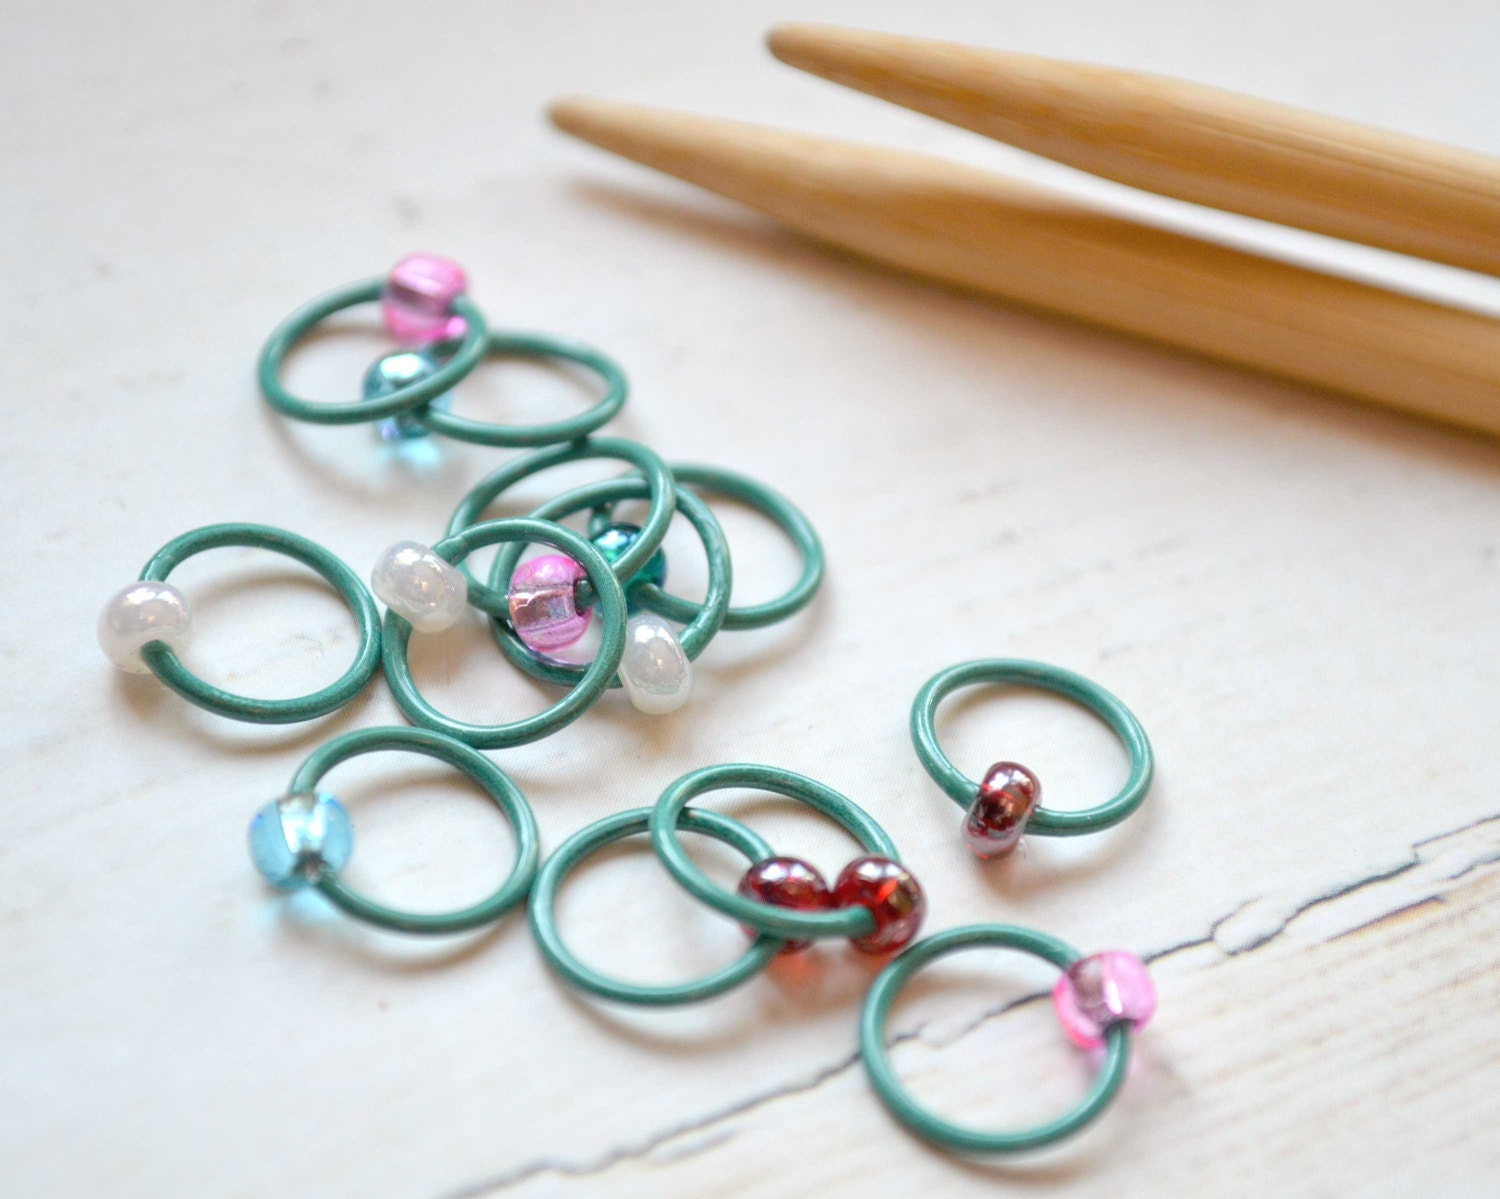 Using Stitch Markers In Knitting : Knitting Stitch Markers / Sweet as Candy / Dangle Free - Snag Free - Colorful...